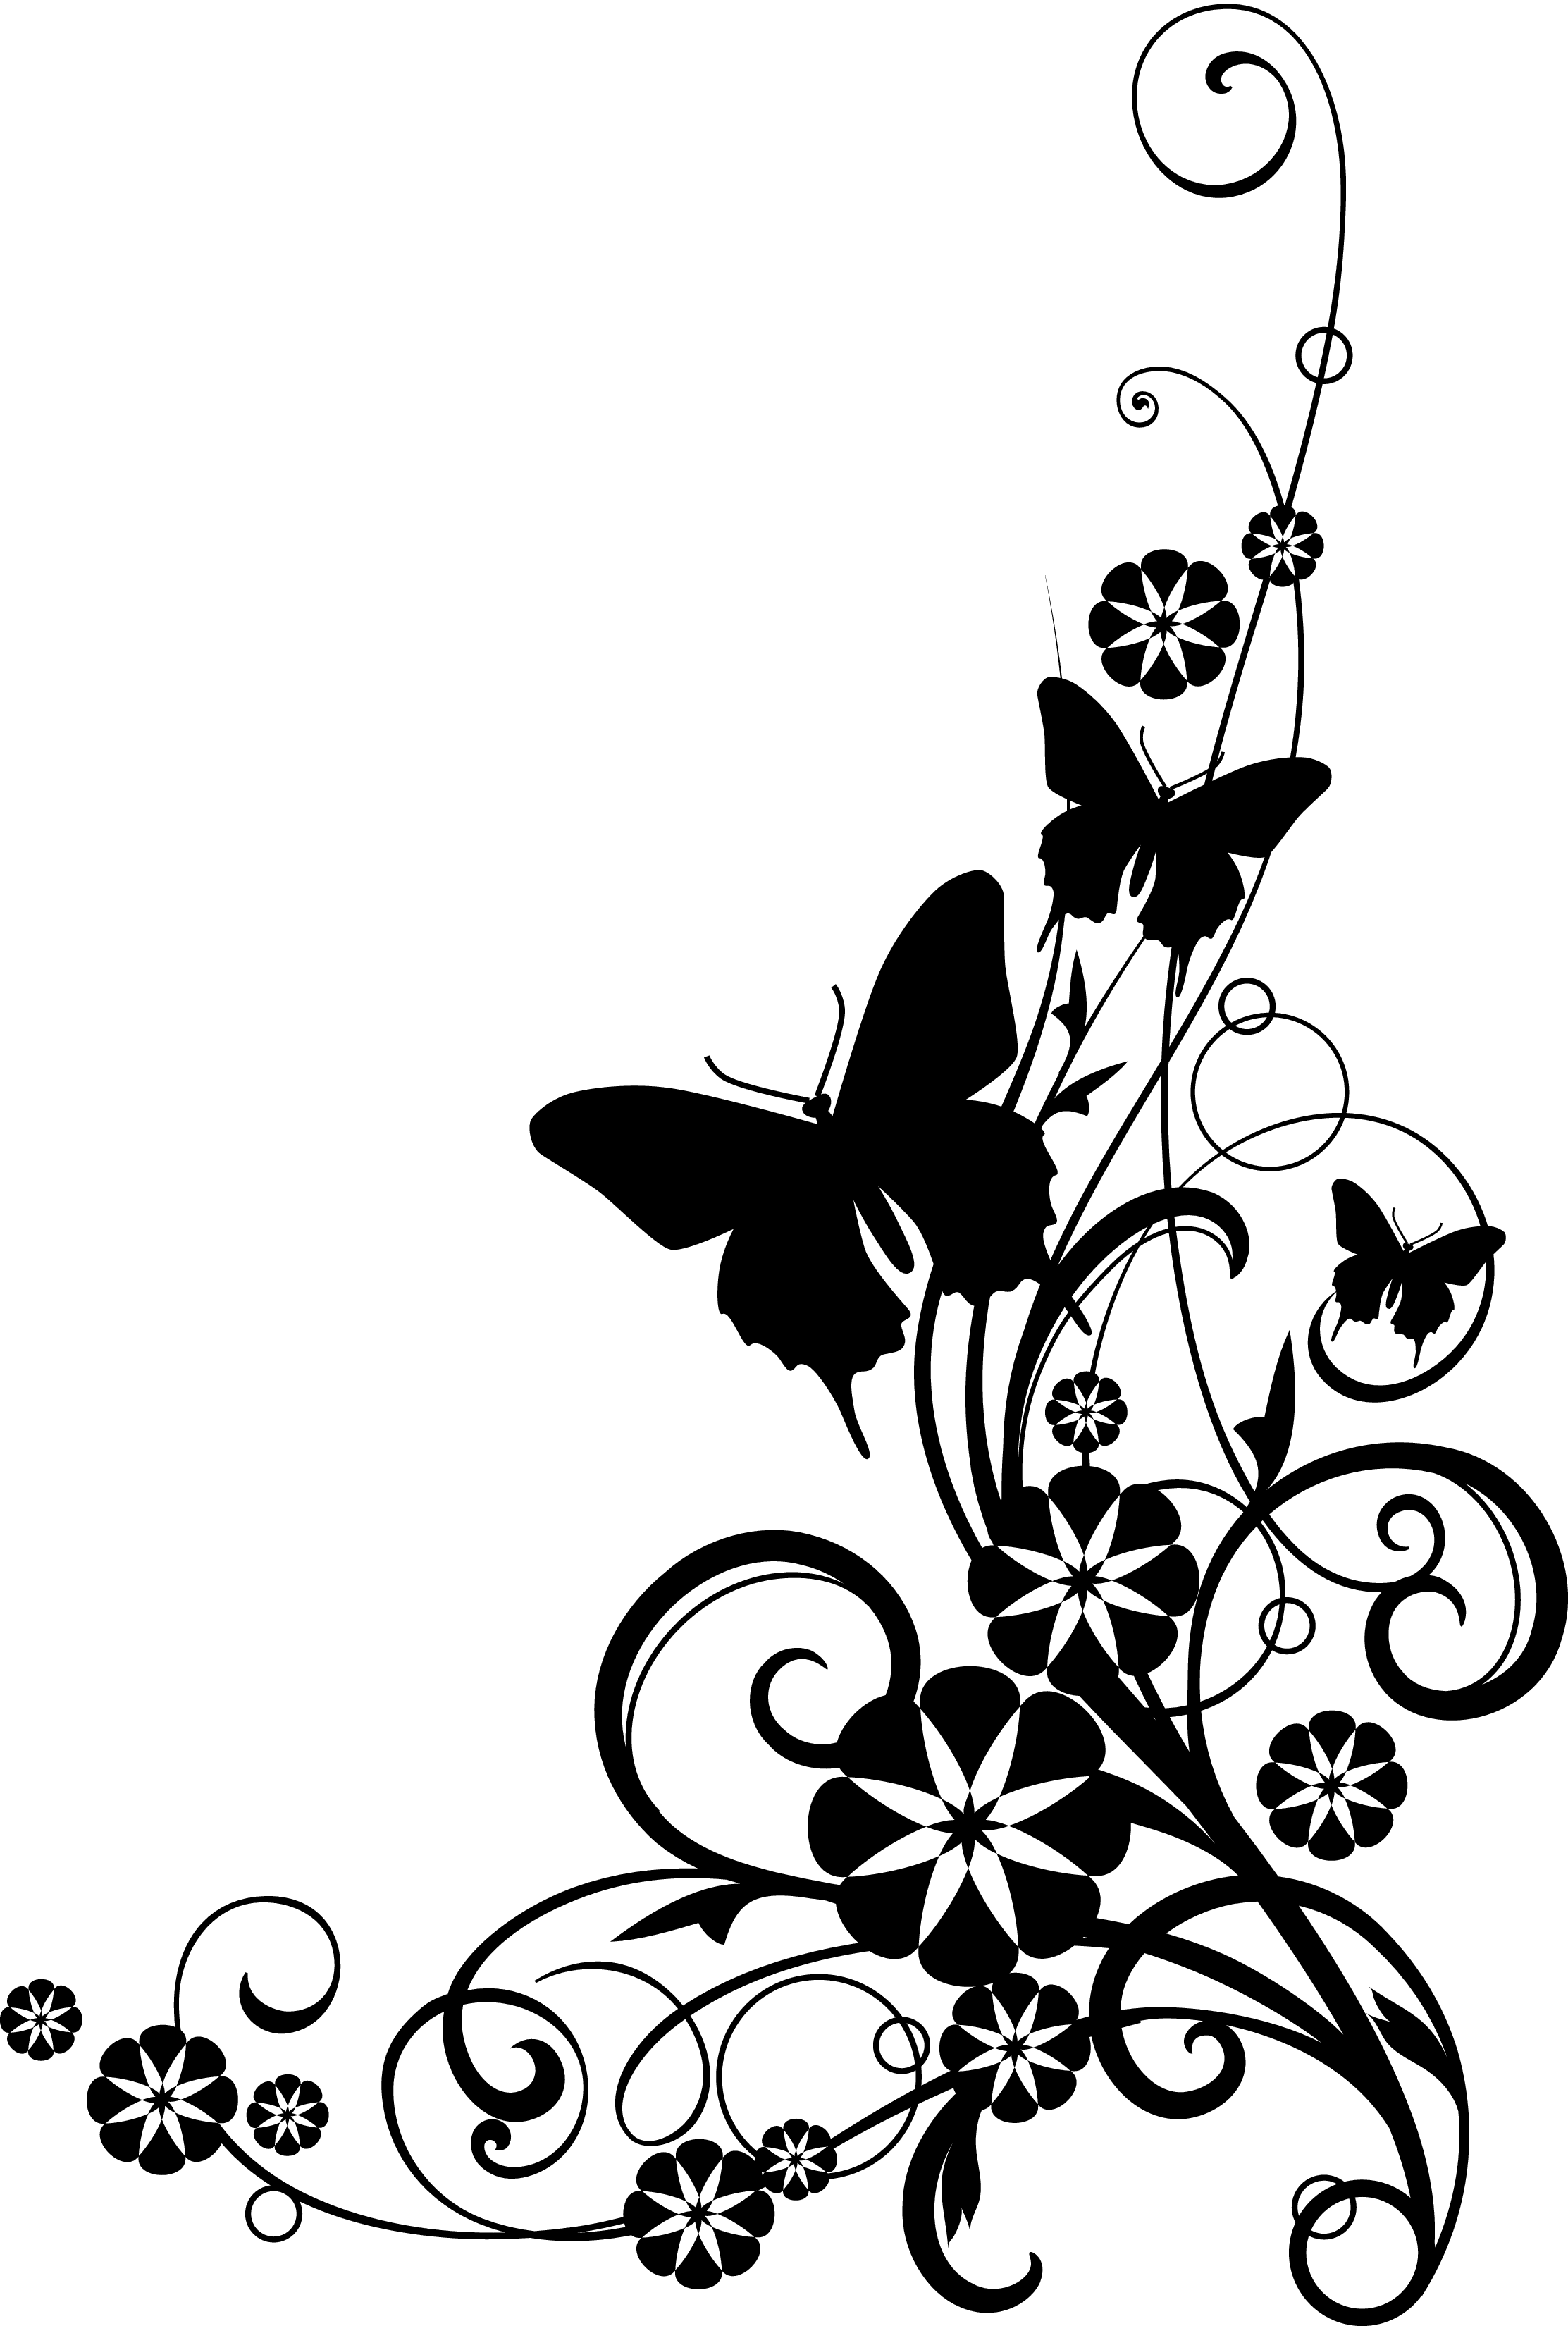 Snowflake black white corner clipart png freeuse download 8c59ec4066e54d3f207a7d2aa92e8274_vine-clipart-black-and-white ... png freeuse download